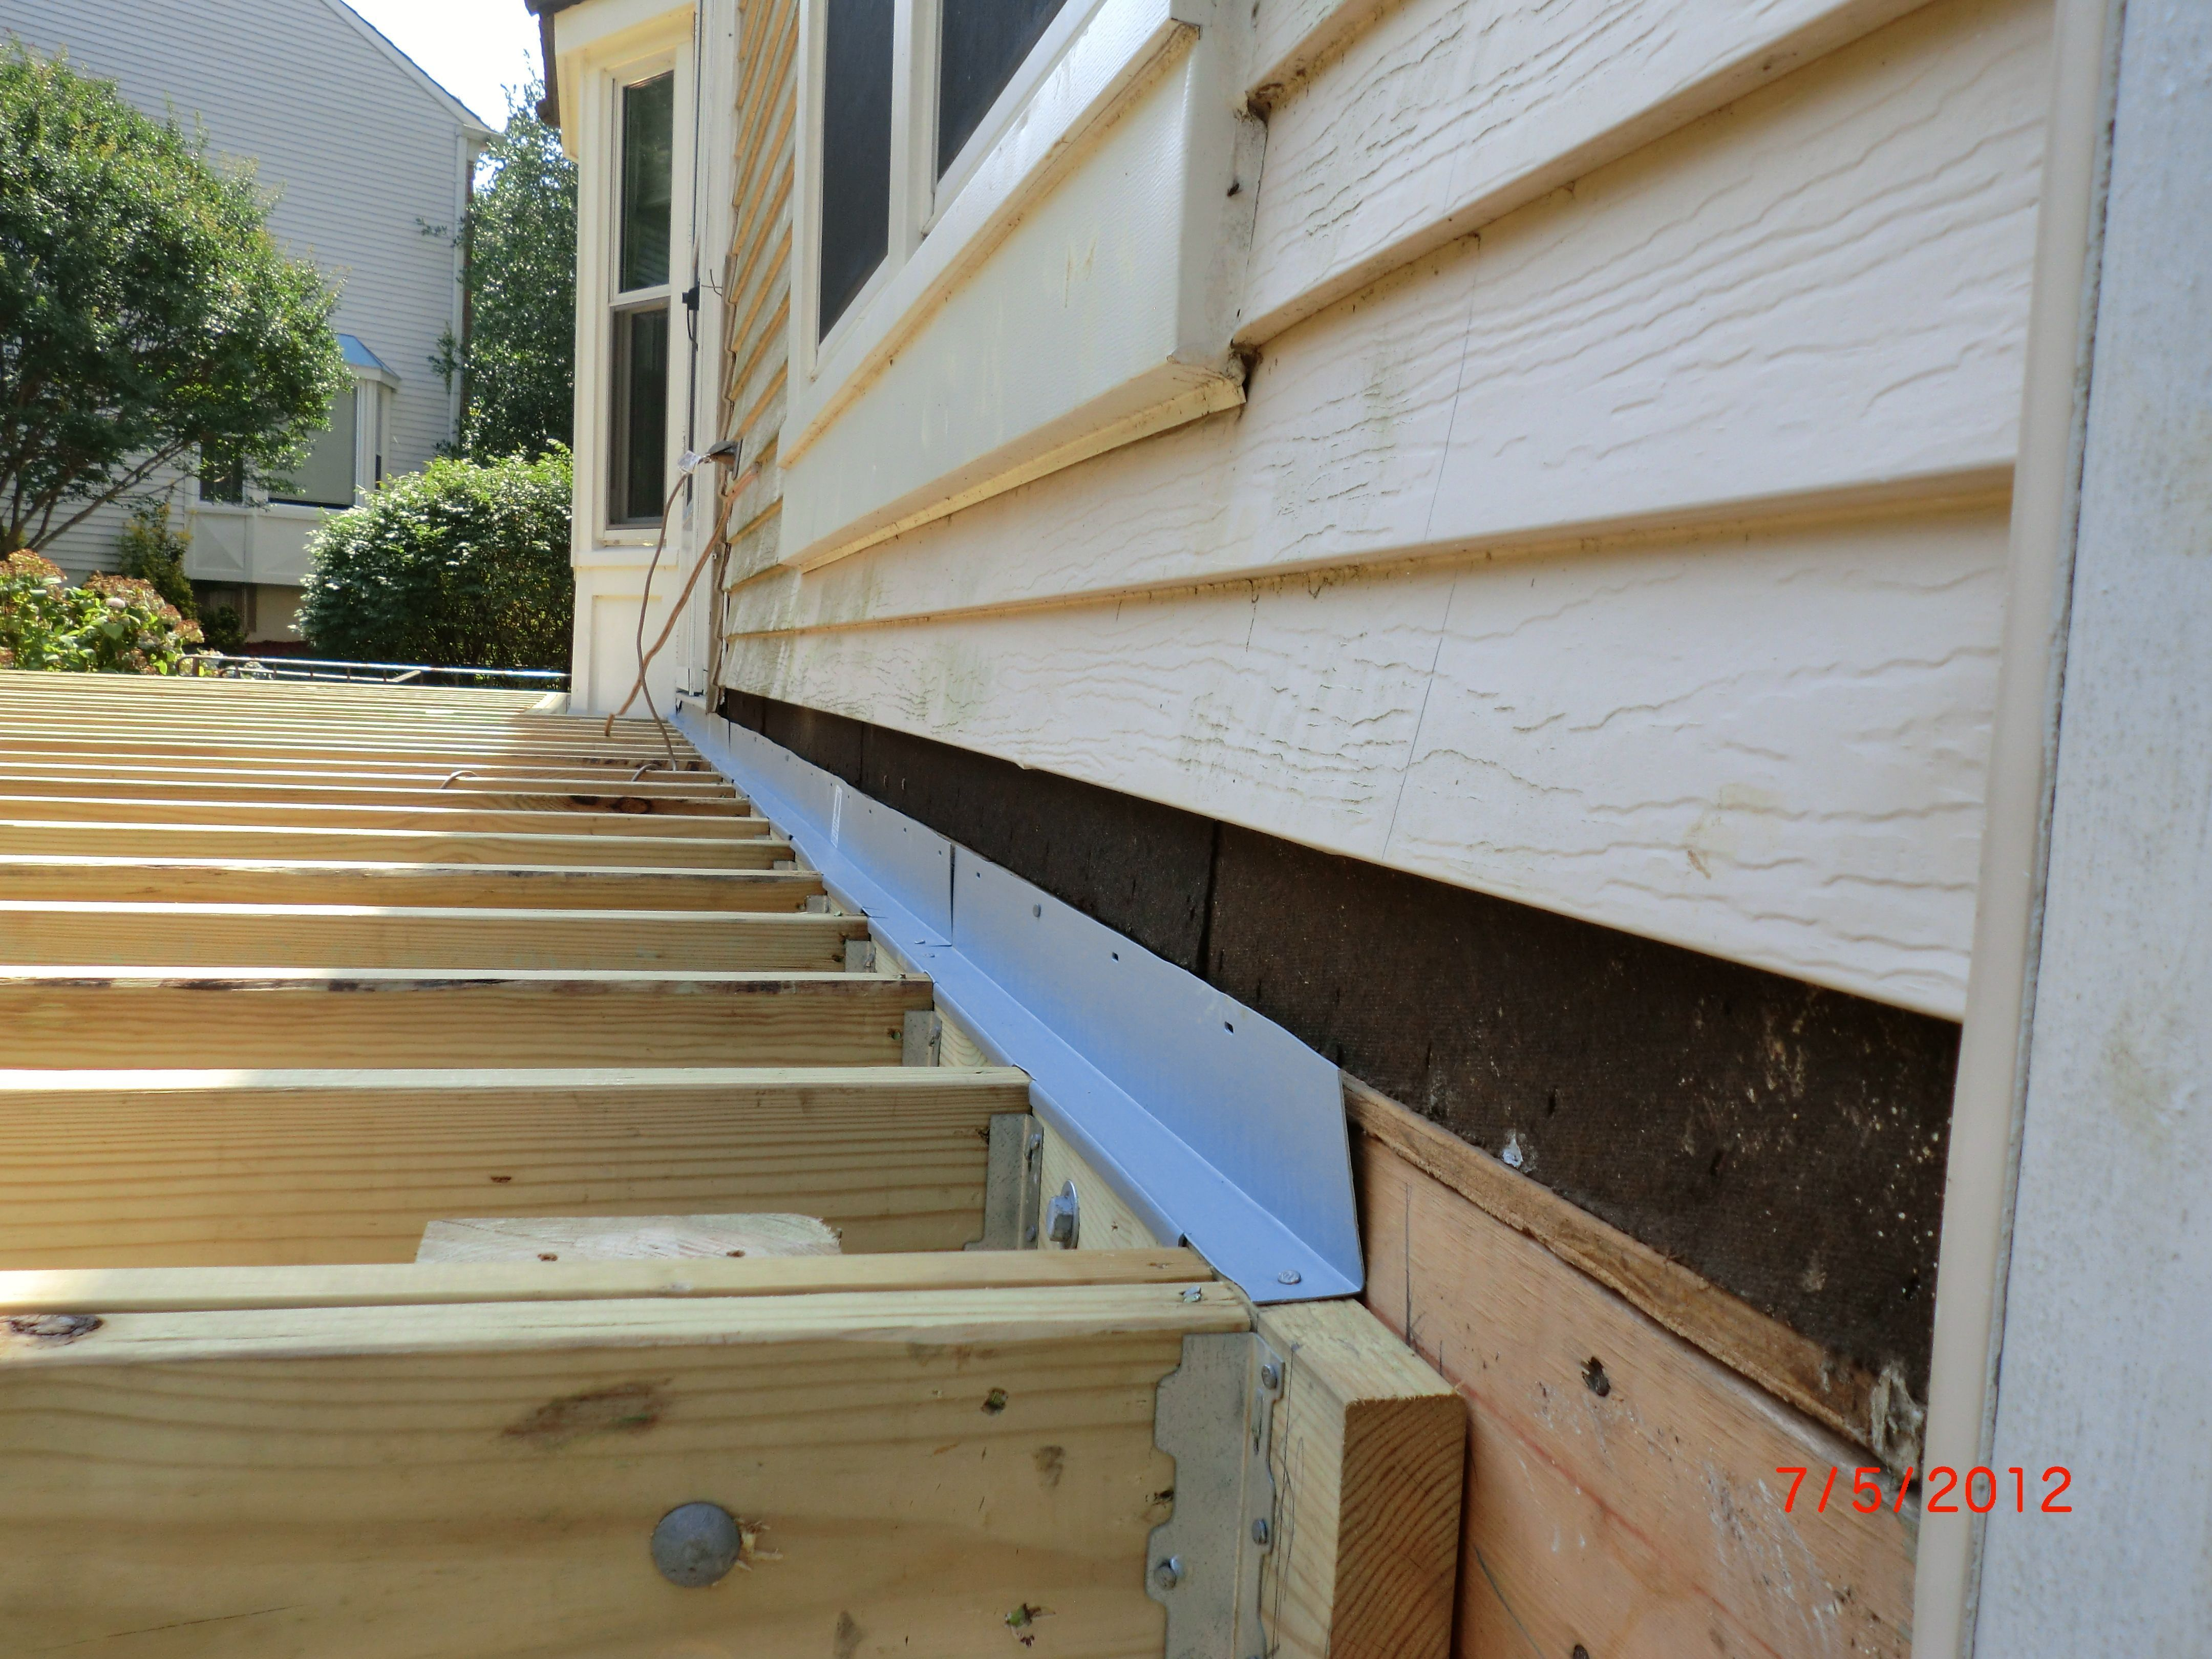 Building A Deck Step By Step Step By Step On How To Build A Deck With A Screen Porch Deckbuildingideas Deckbuildingstep Deck Steps Building A Deck Diy Deck